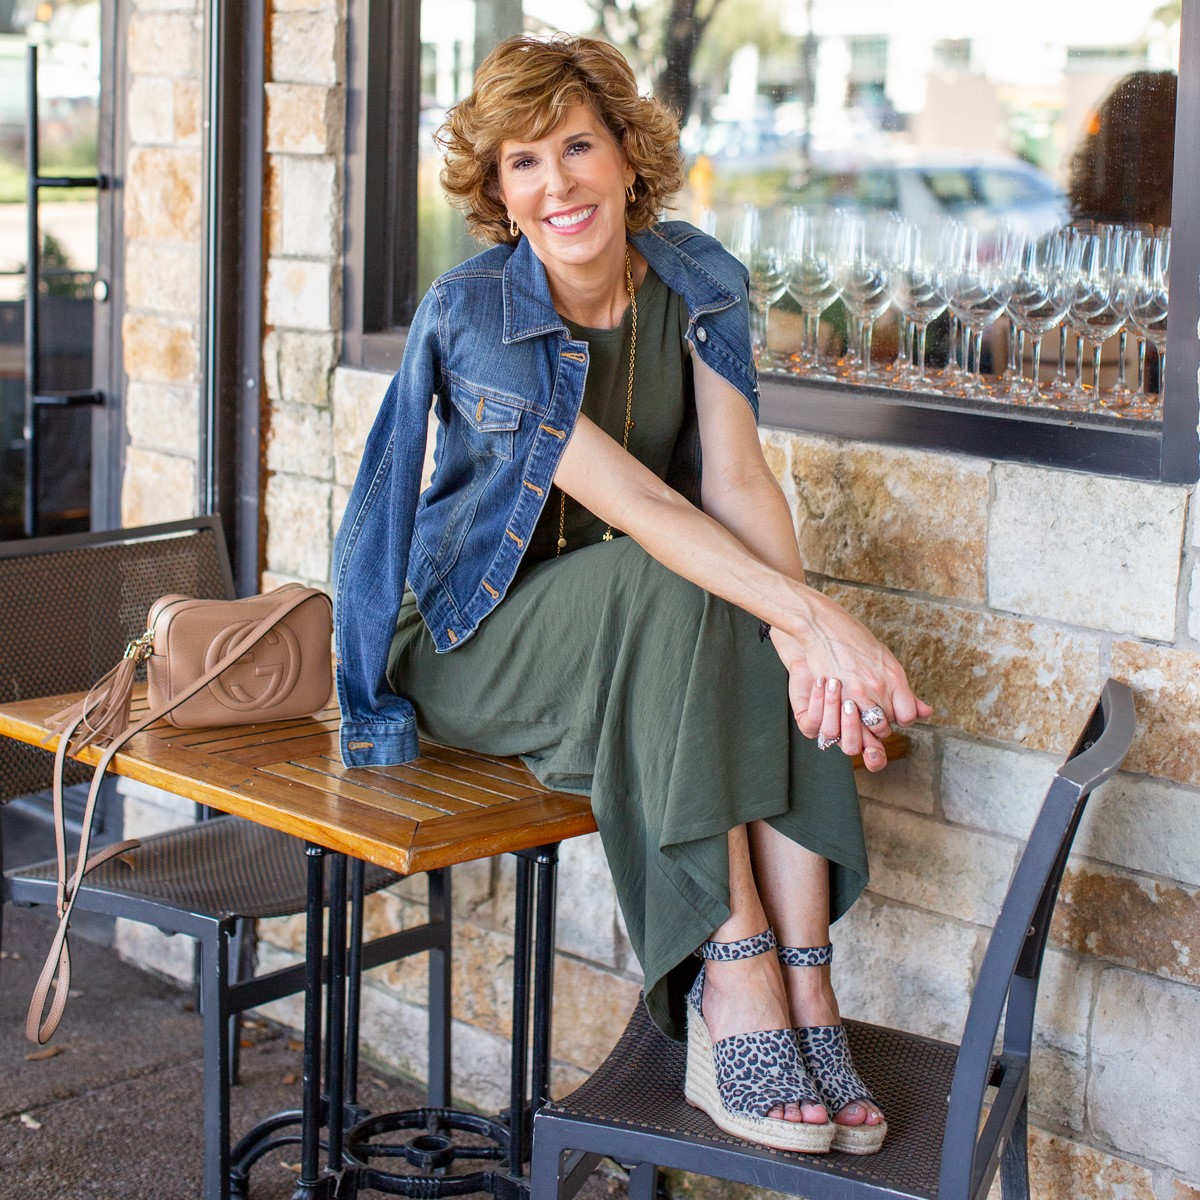 woman in green dress and denim jacket sitting on a restaurant patio table